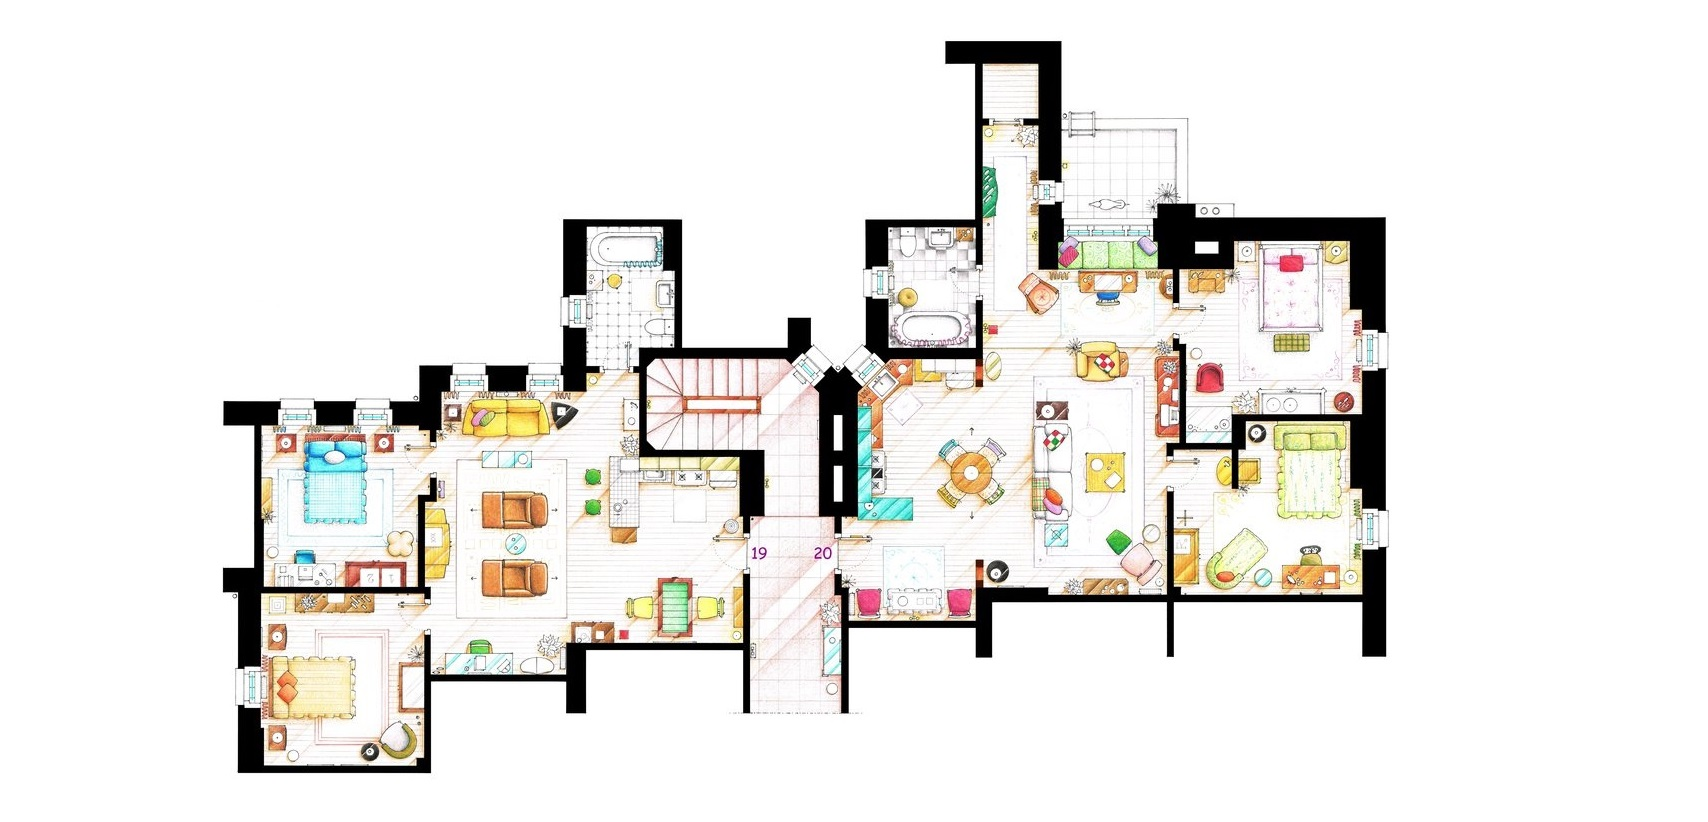 Tv show apartment floor plans best free home design for Gossip girl apartment floor plans